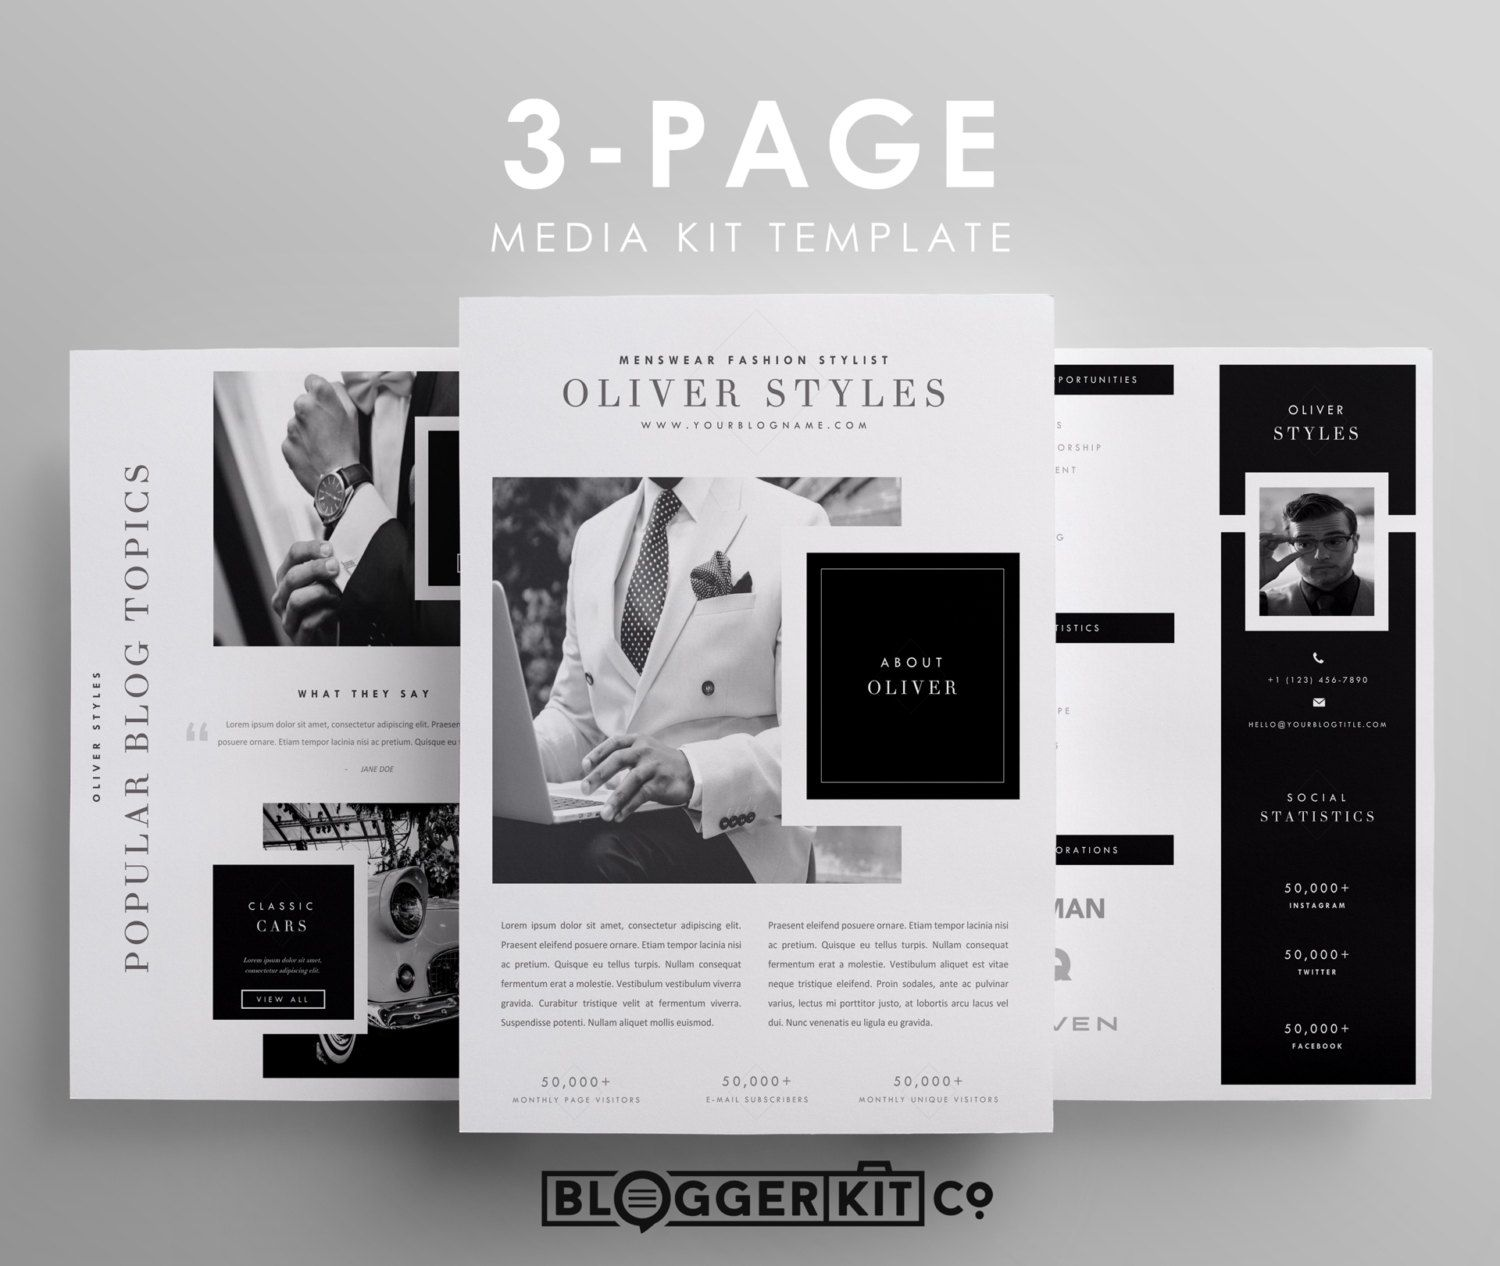 Three page media kit template press kit template for Online media kit template